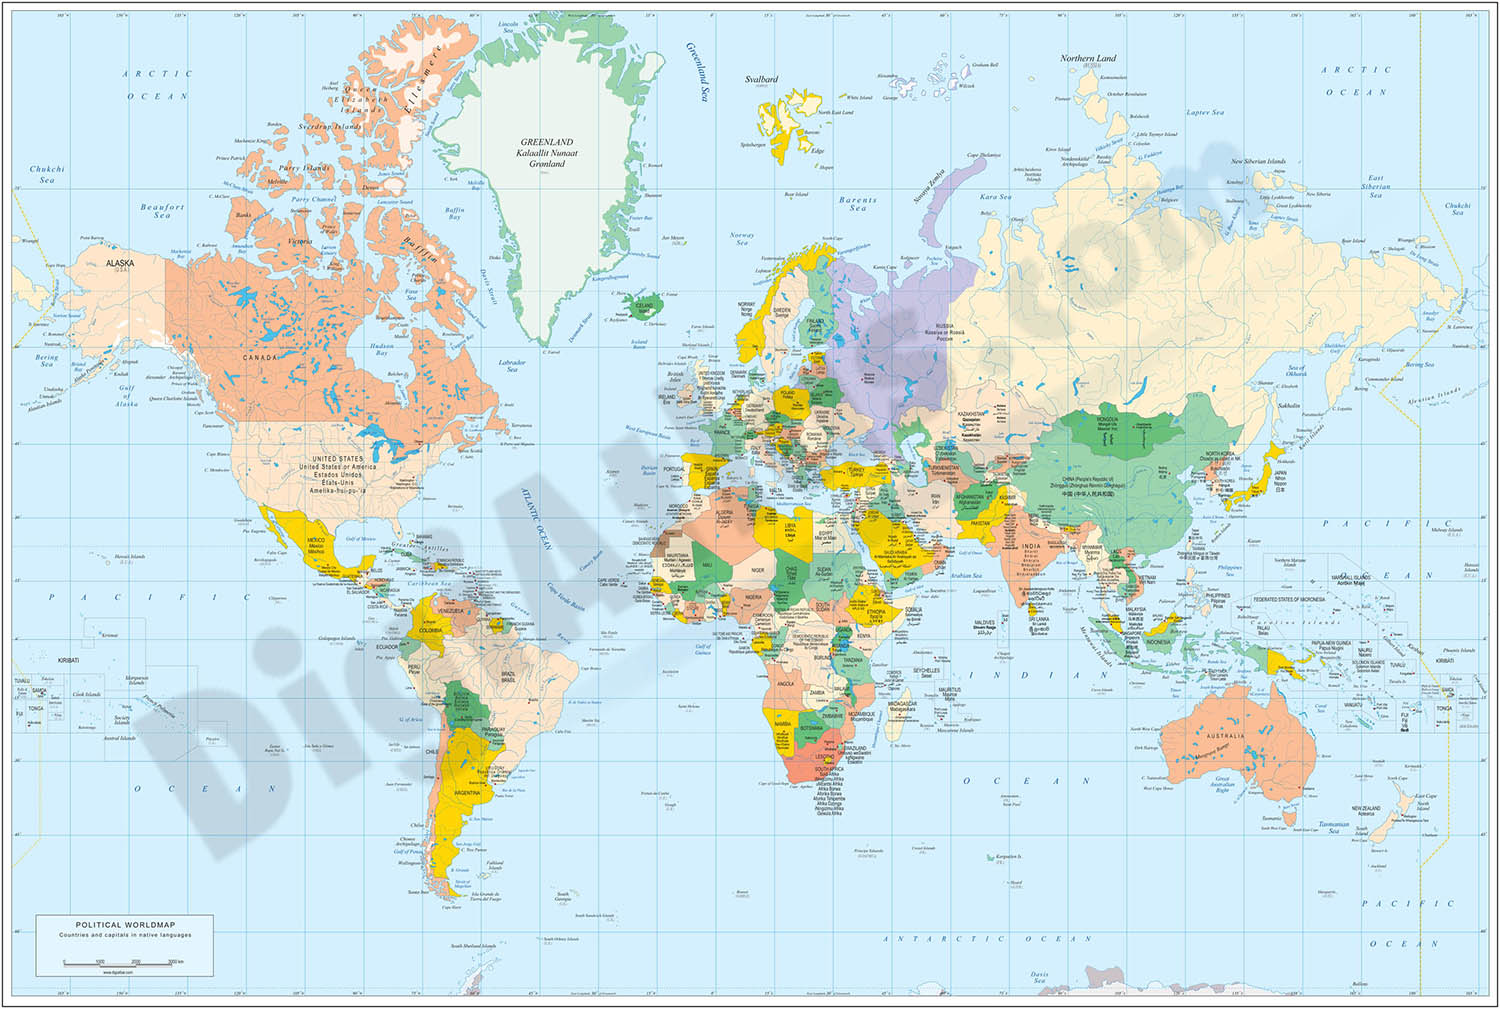 World map with official languages